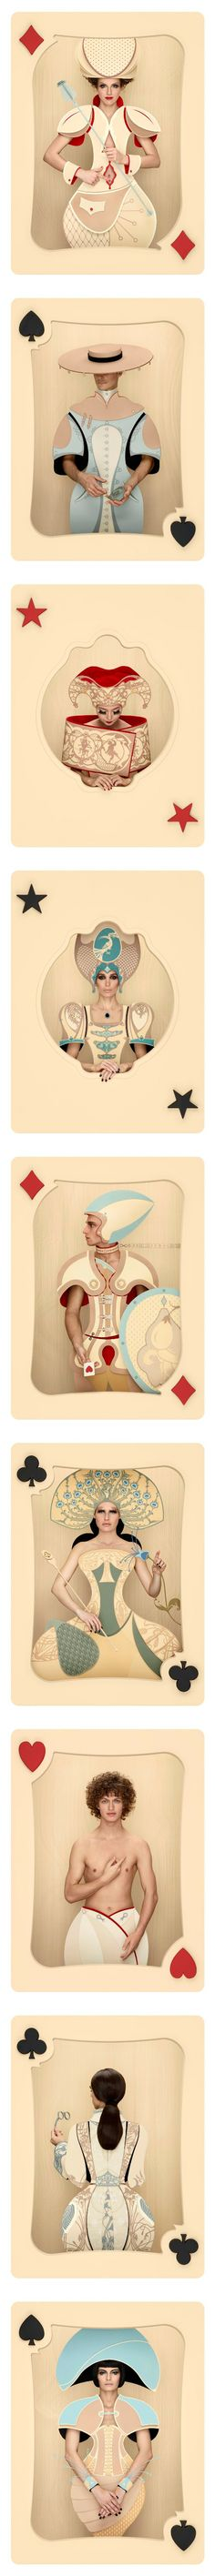 'Cards' is a surreal and whimsical photo series by photographer Christian Tagliavini featuring human models as playing cards. (http://www.christiantagliavini.com) (http://designtaxi.com/news/361147/Beautiful-Whimsical-Photos-Of-Playing-Cards-Featuring-Human-Models/)